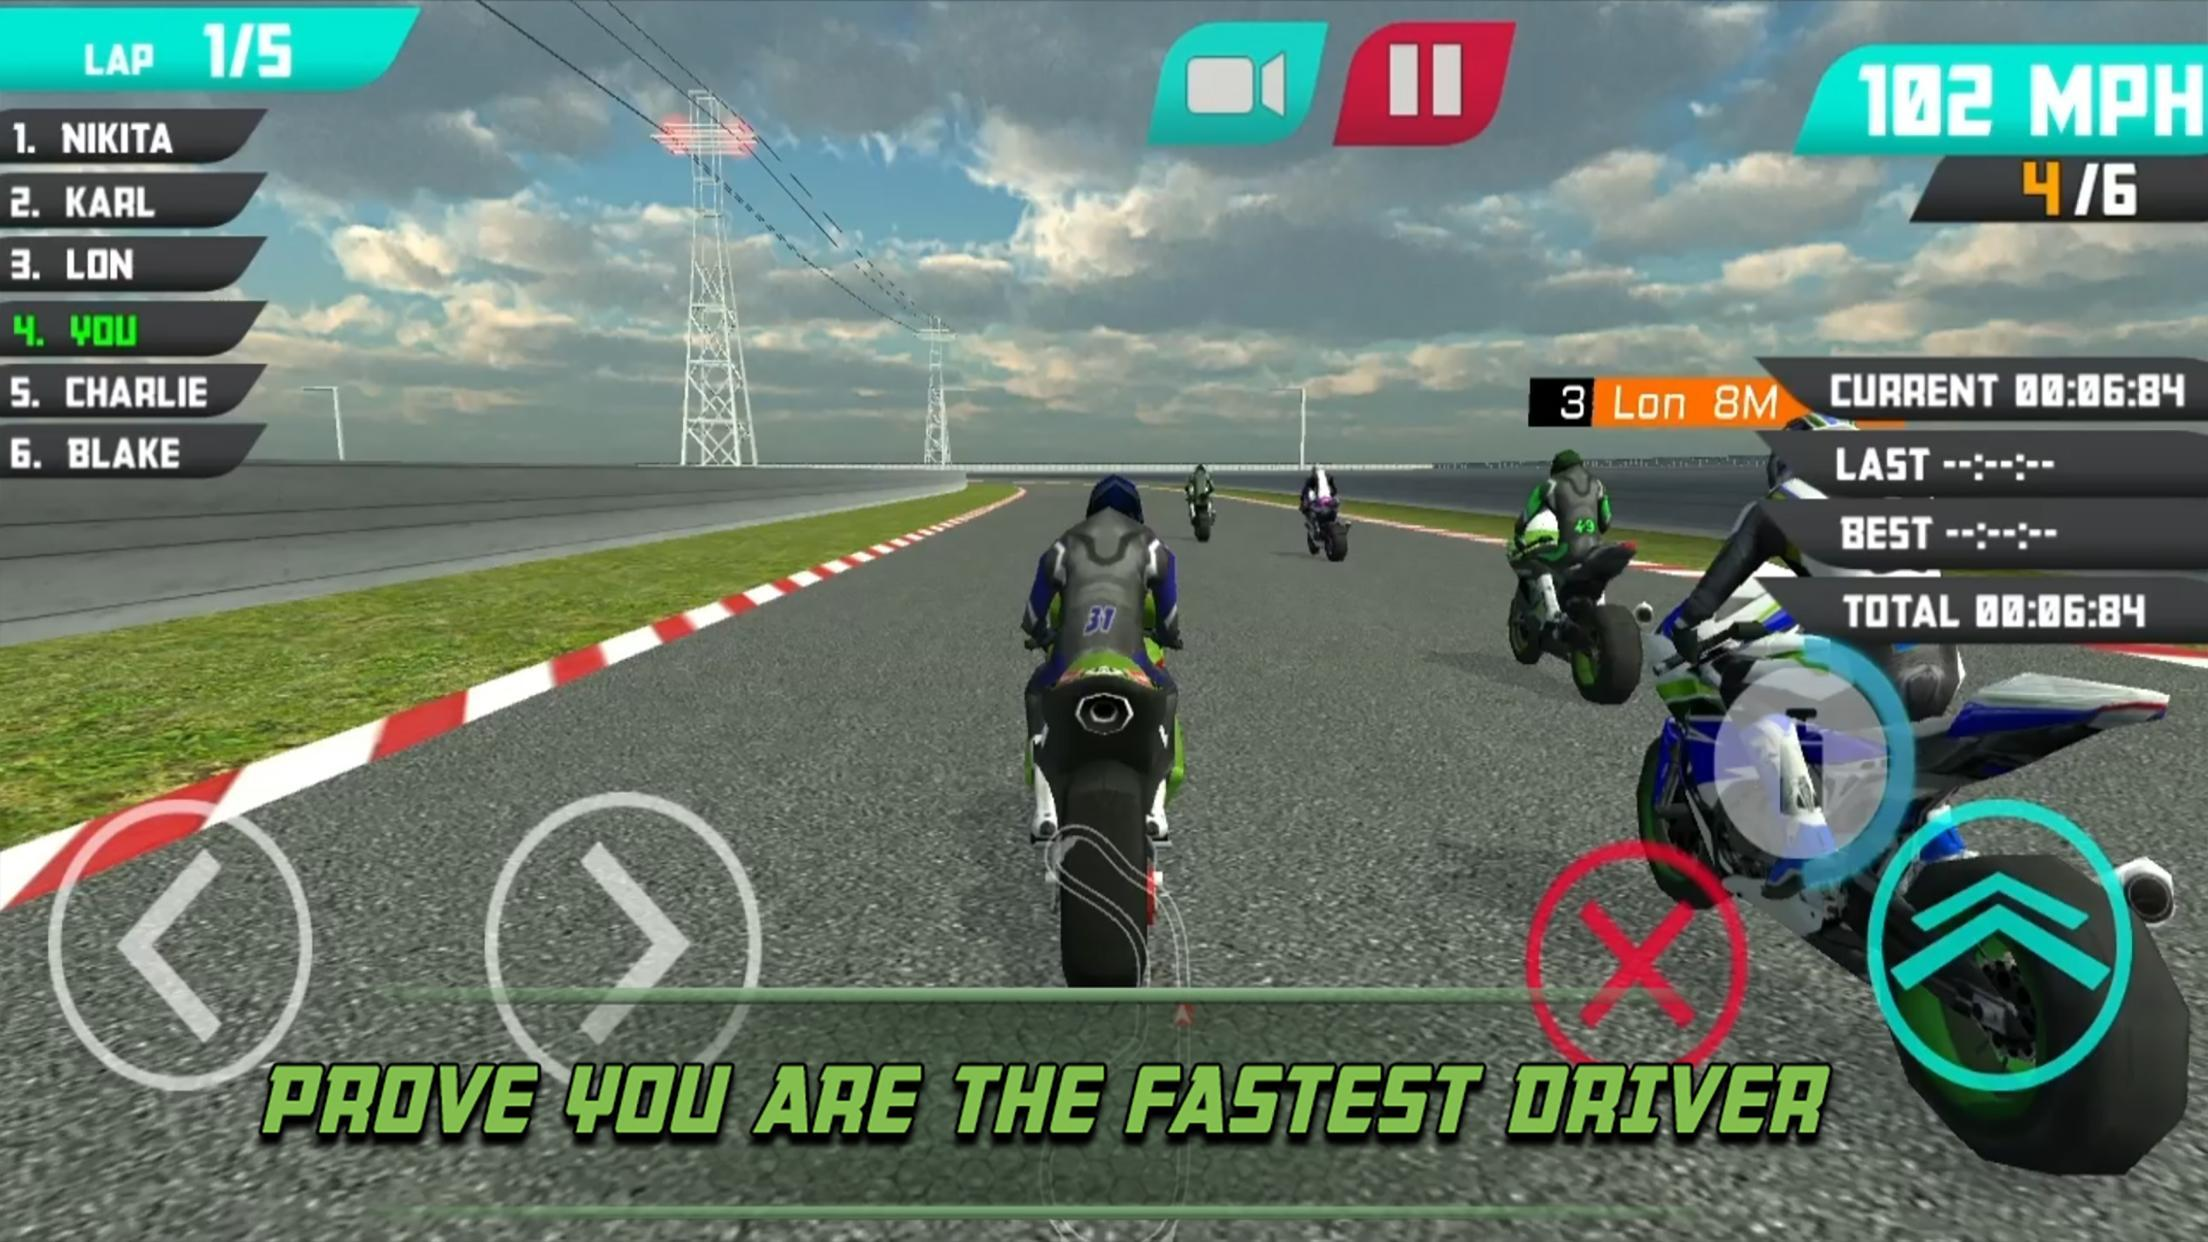 Moto Racing Gp 2017 Free Games For Android Apk Download